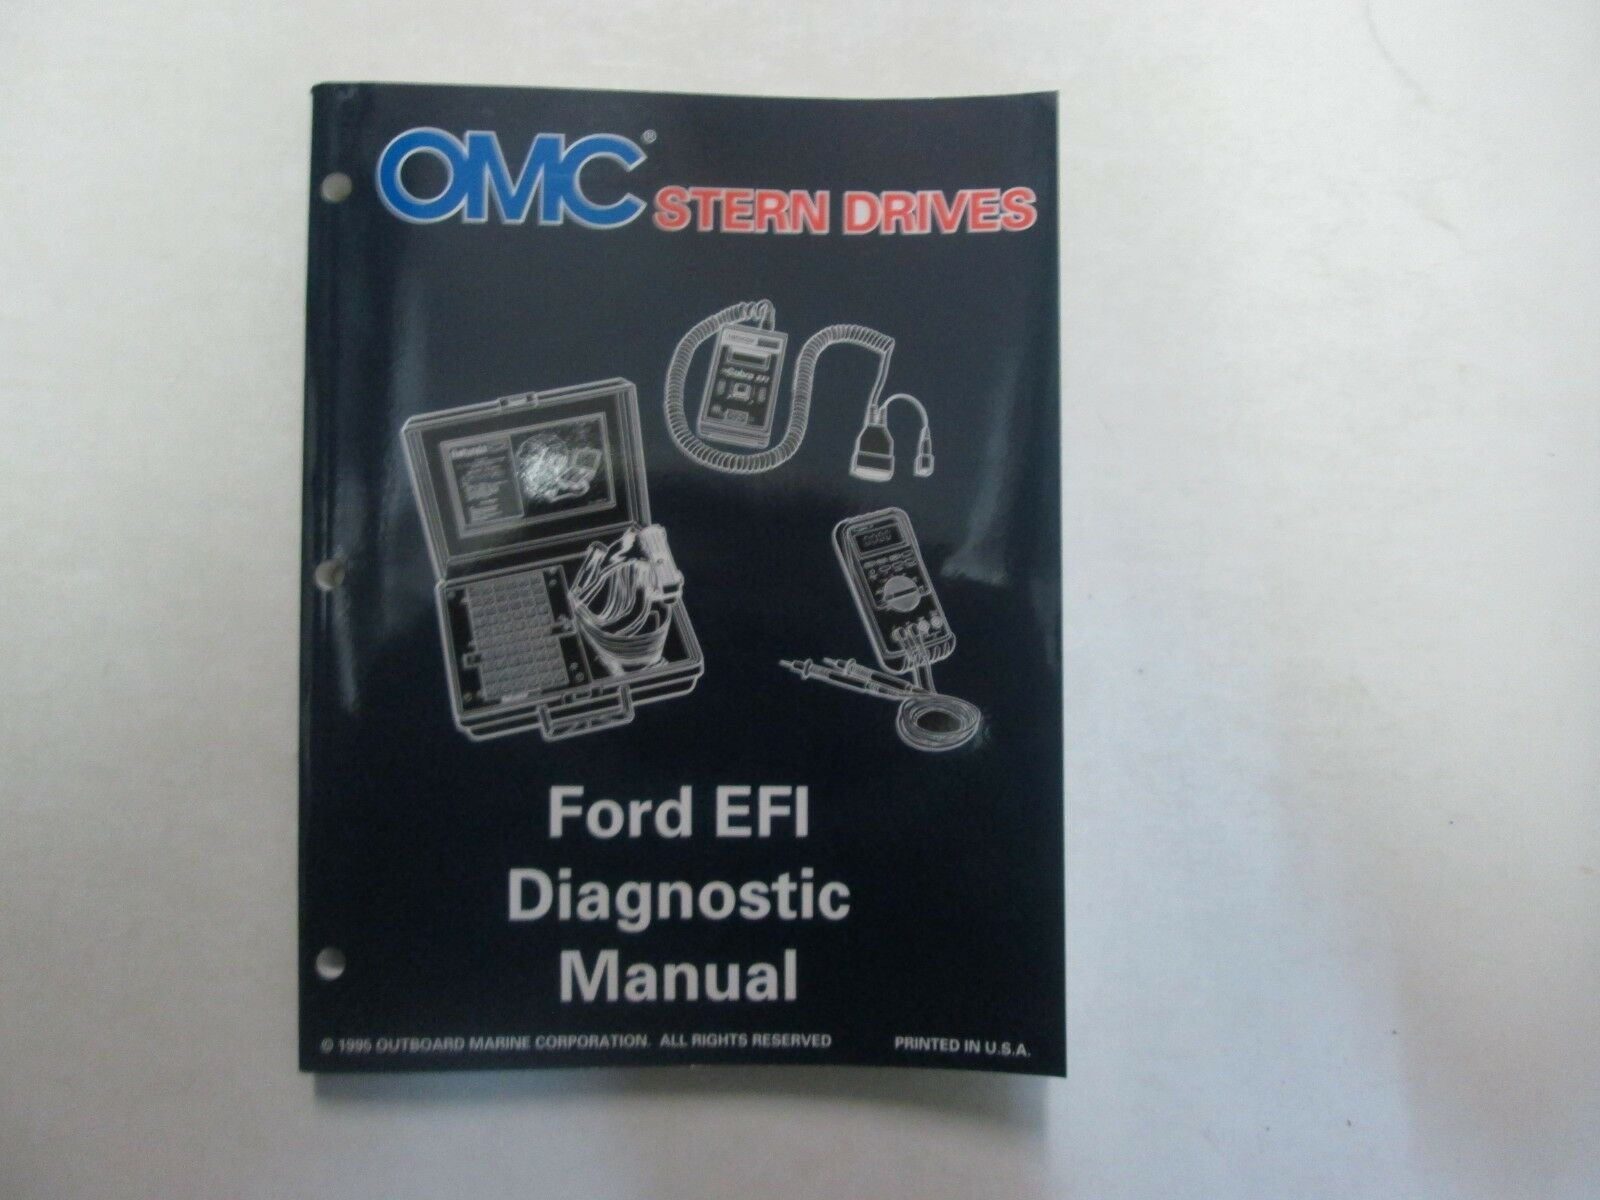 Primary image for 1996 Omc Stern Drives Ford Efi Diagnose Service Reparatur Manuell Fabrik OEM ***